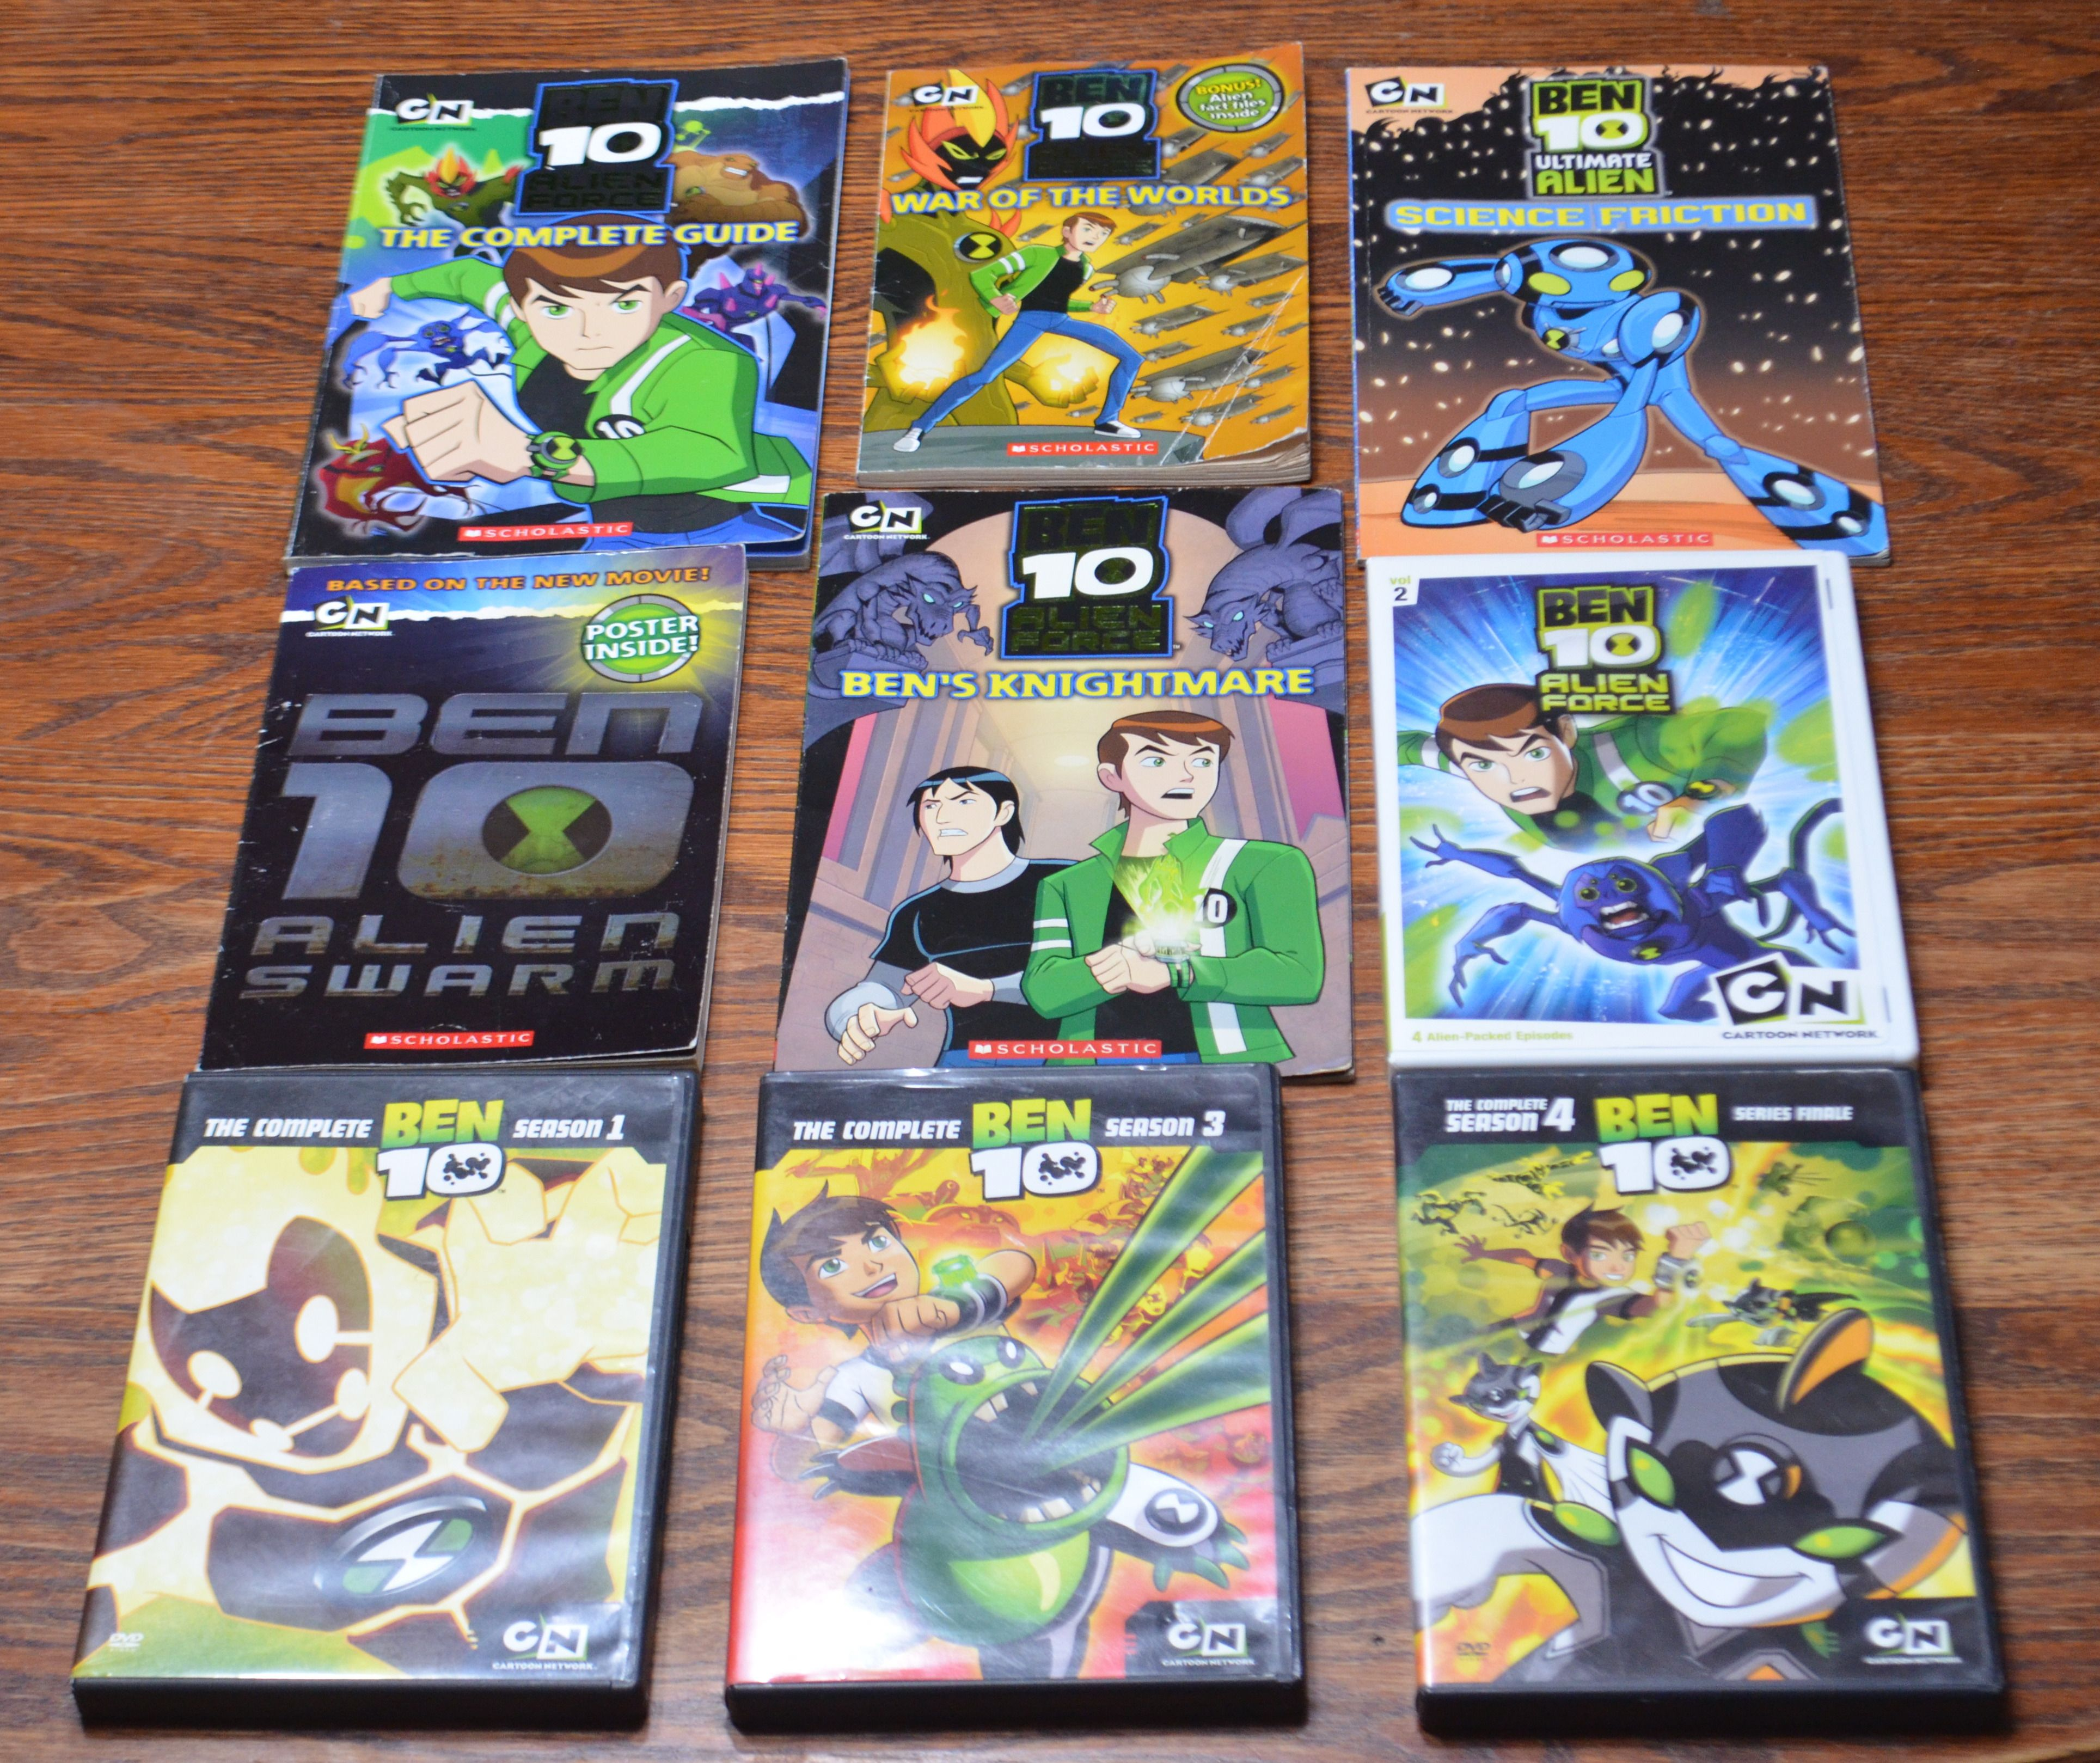 Ben 10 lot includes 5 paperbacks, and 4 DVDs